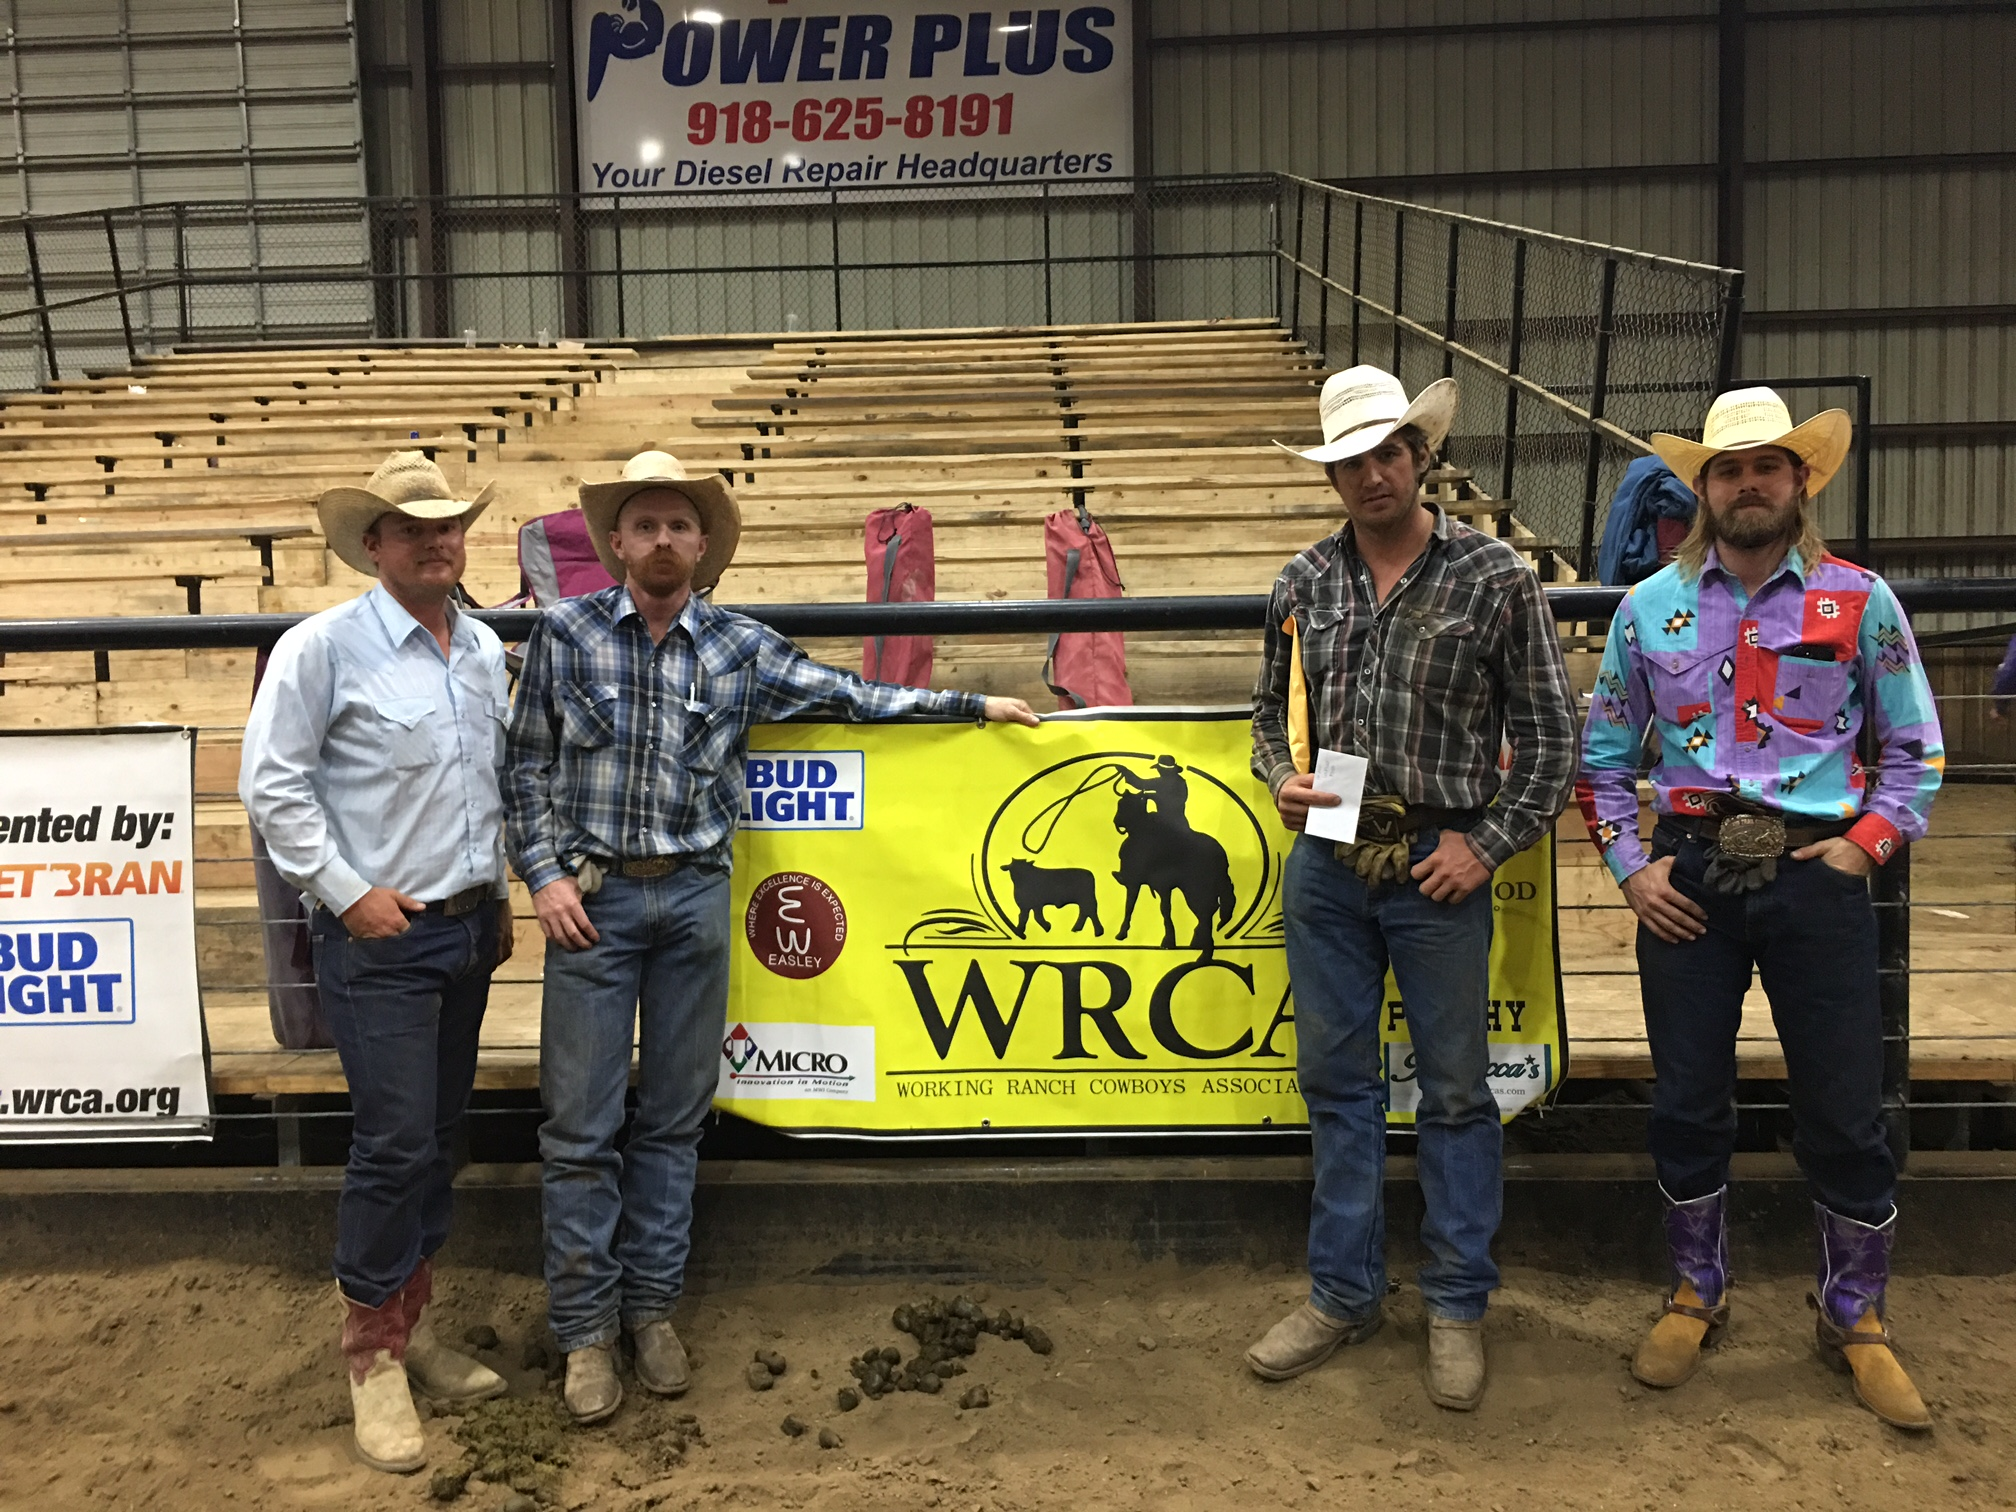 2017 Pryor Creek Benefit Ranch Rodeo Champion Team